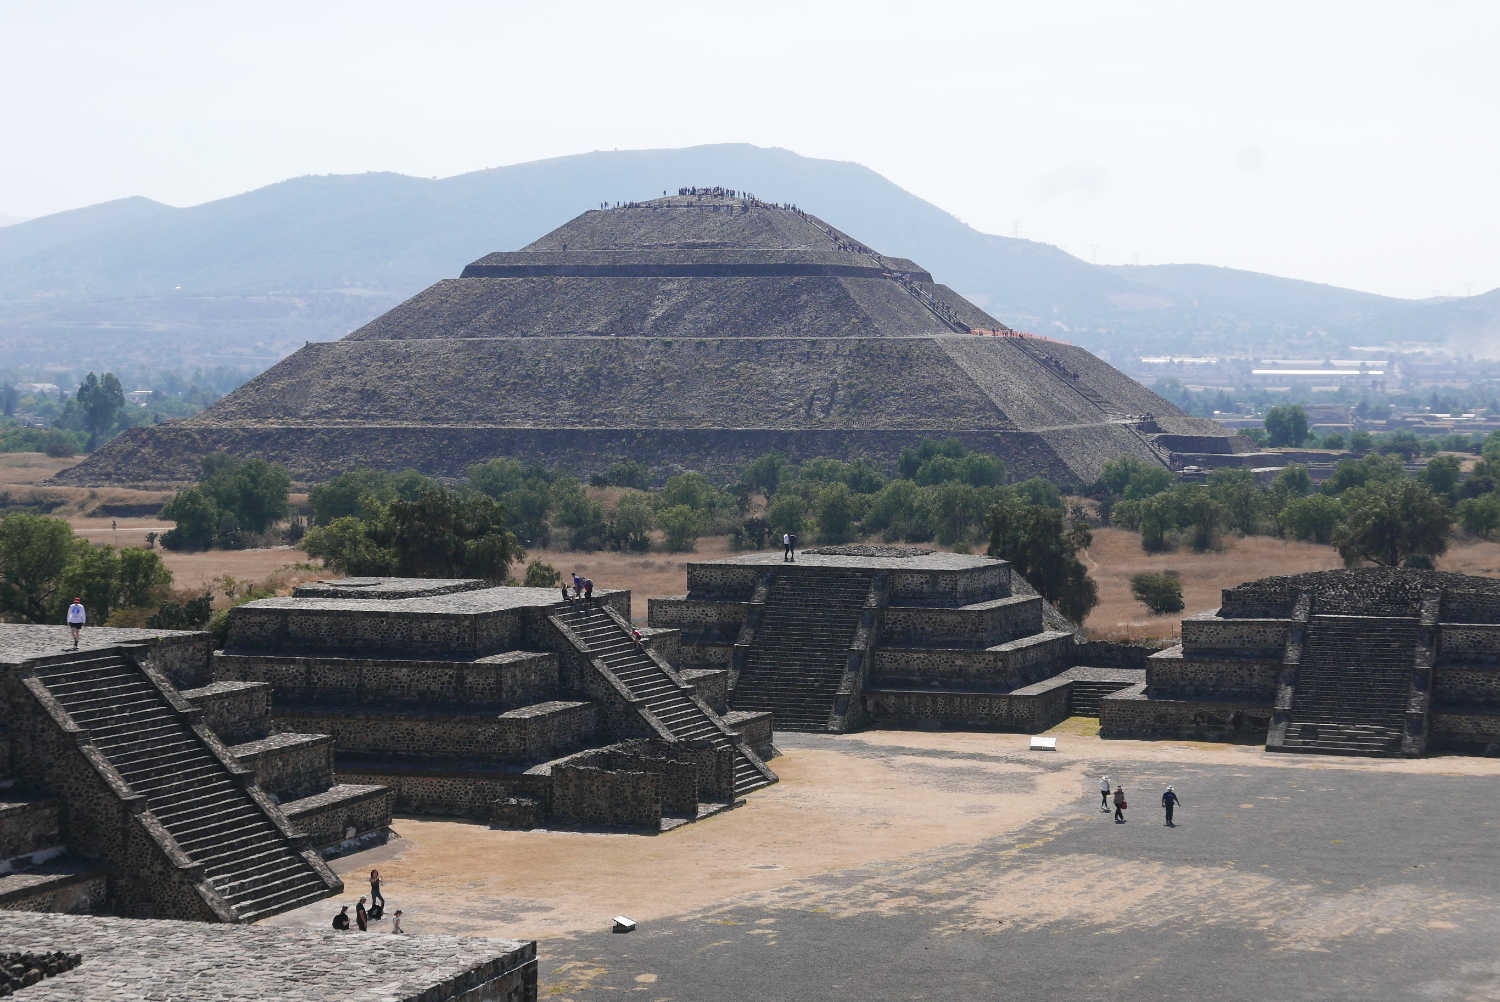 Panorama picture of Pyramid of the Sun in Teotihuacan